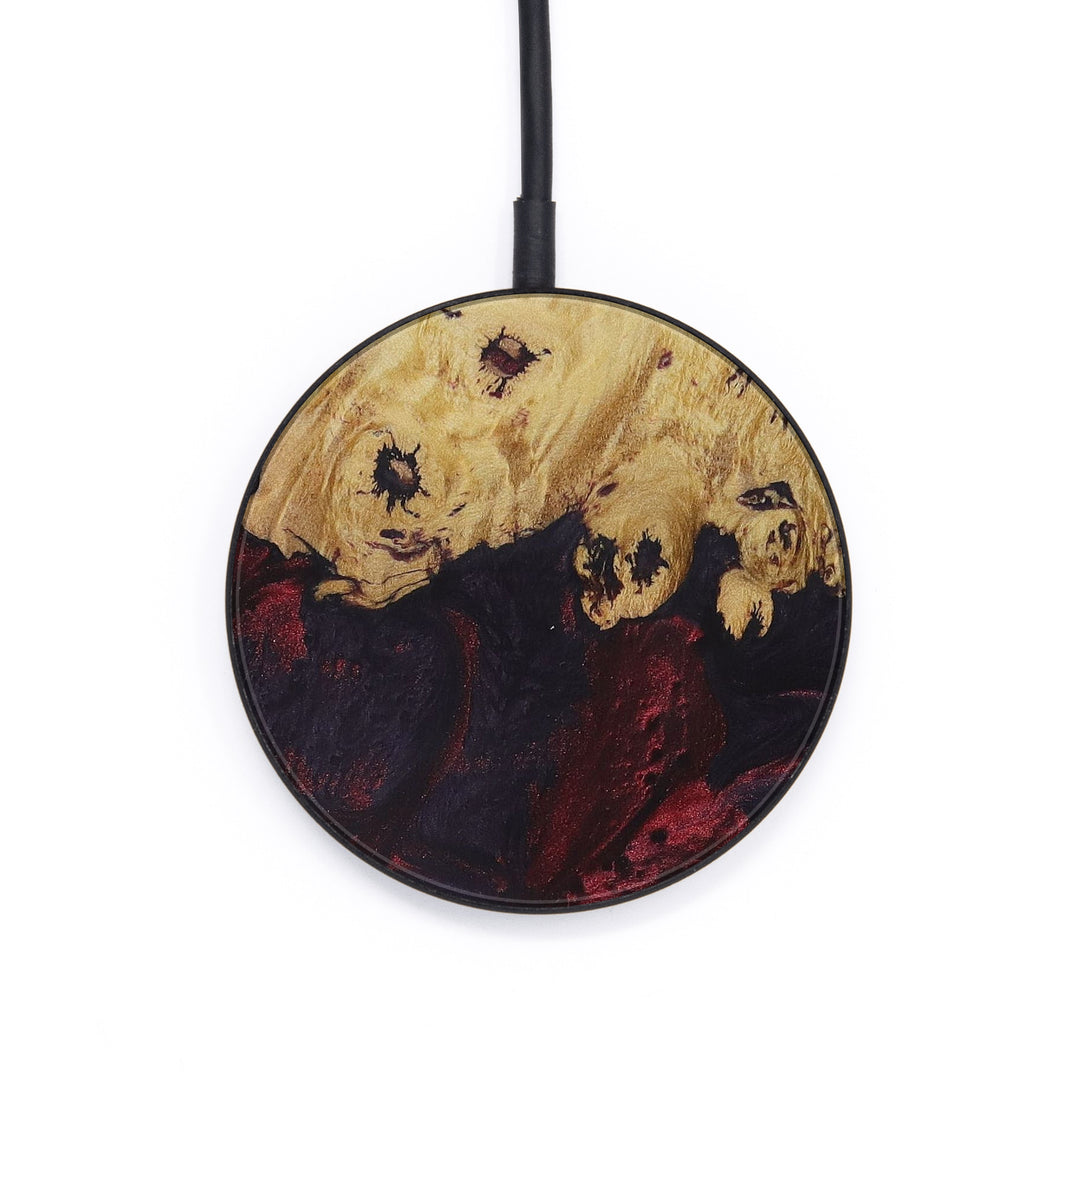 Circle Wood+Resin Wireless Charger - Almire (Dark Red, 428351)